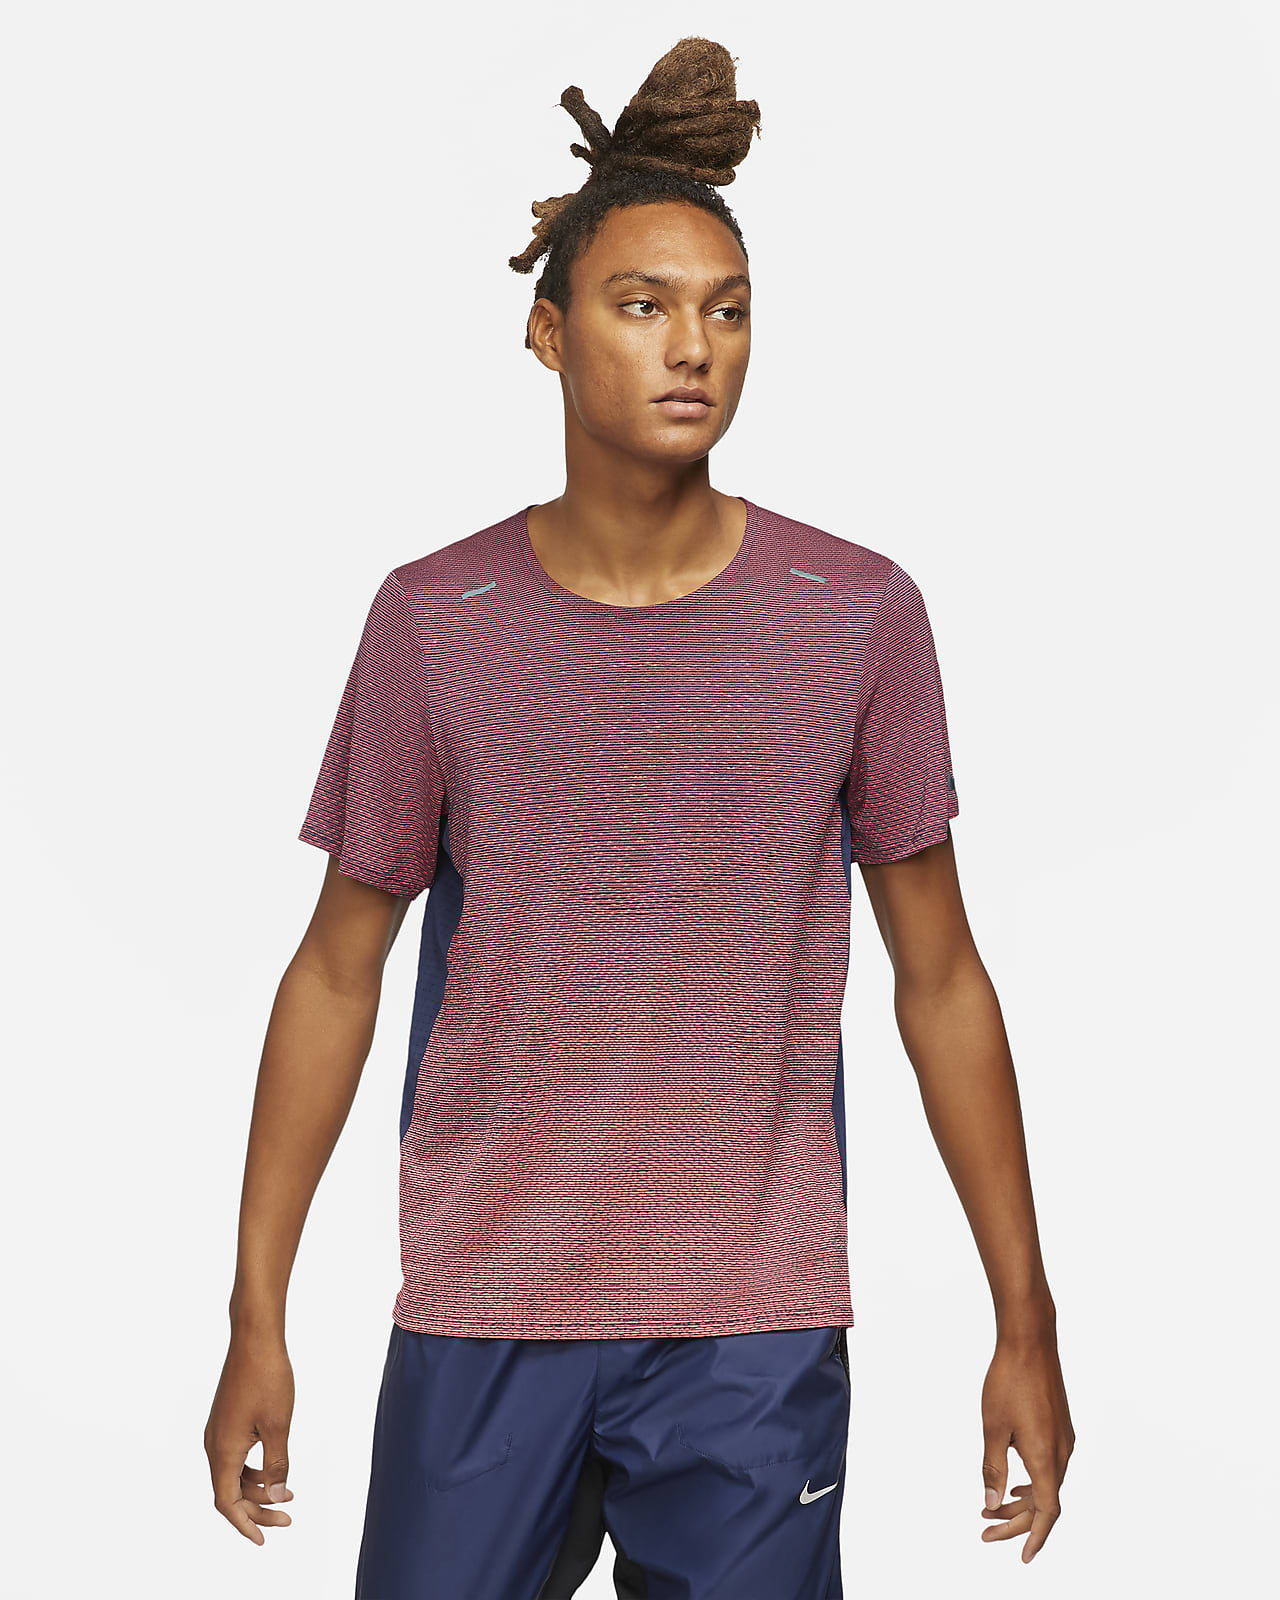 Nike Pinnacle Run Division Men's Short-Sleeve Running Top